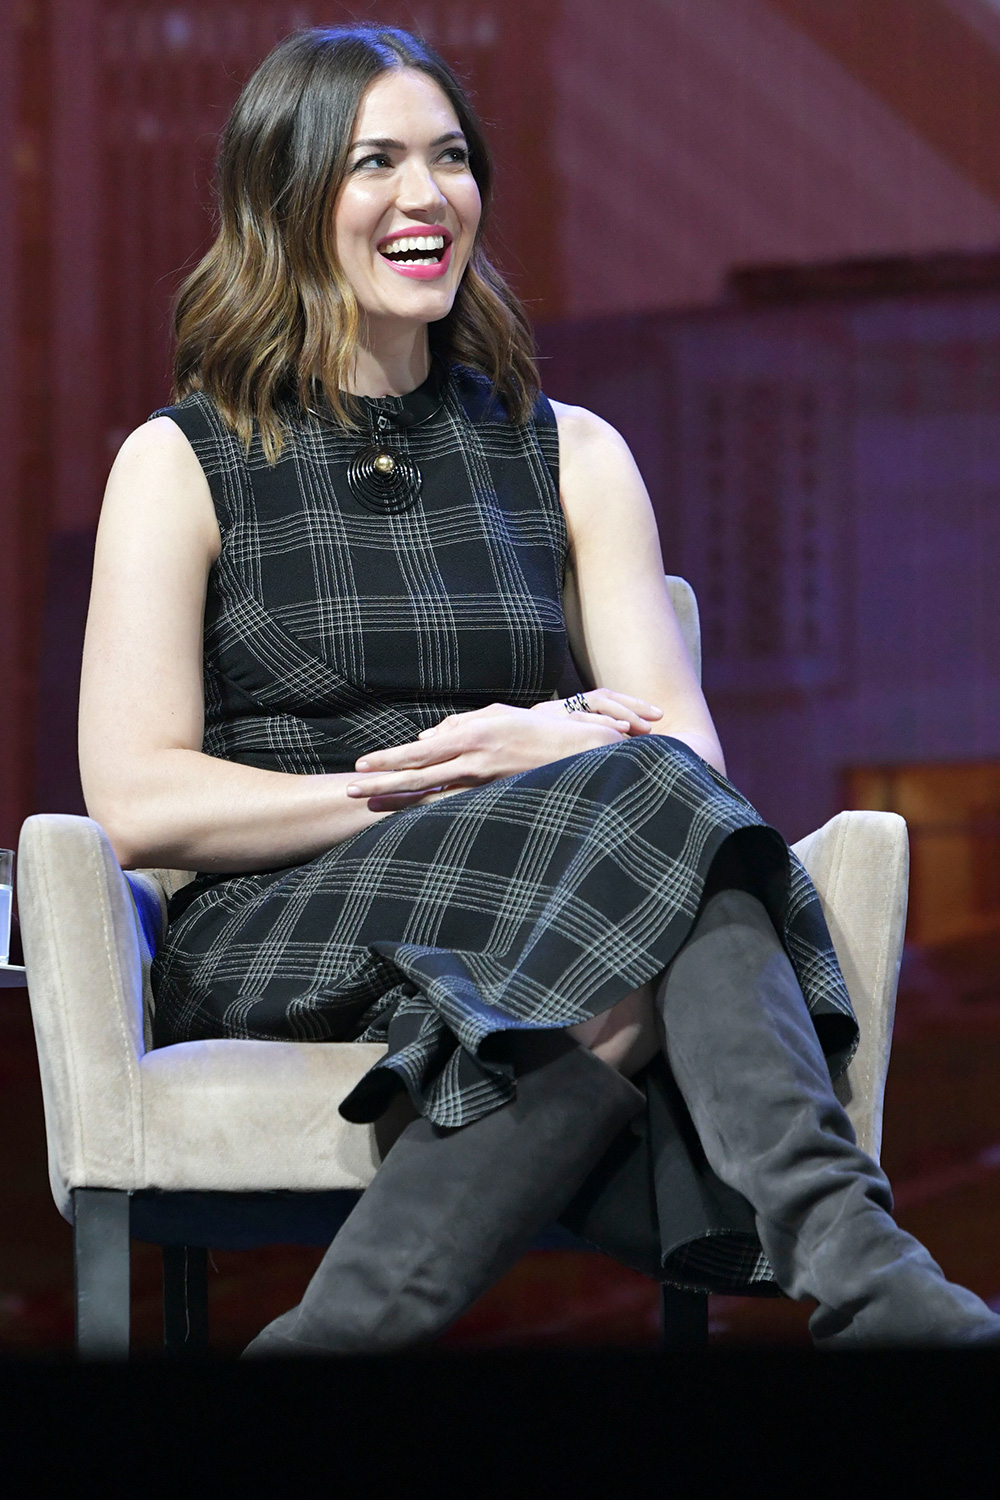 Mandy Moore at the NBCUniversal Keynote 'If TV Was Invented Today: NBCUniversal Reimagines the Future of Entertainment' panel During CES 2020 at The Park Theater at Park MGM in Las Vegas, Nevada on January 8, 2020